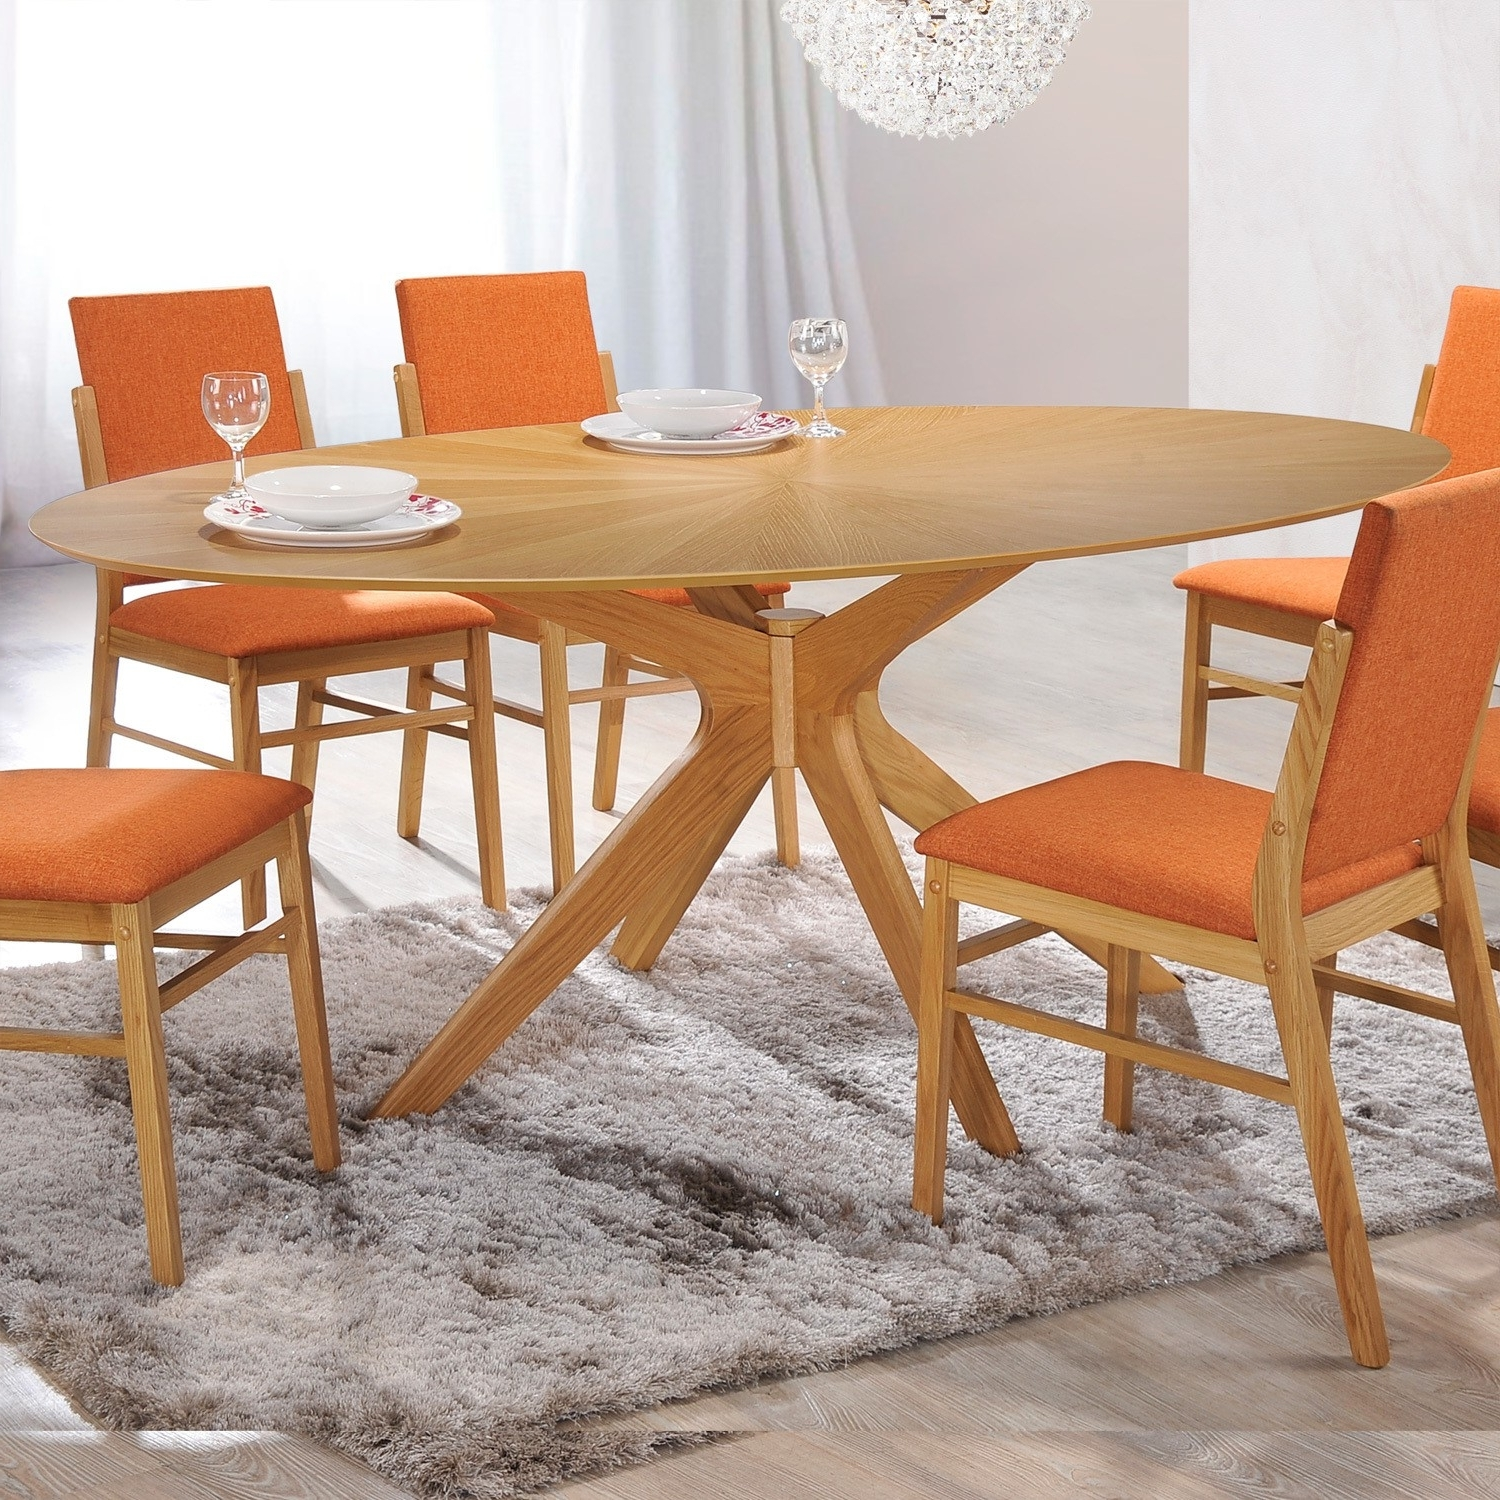 Jaxon Grey 5 Piece Round Extension Dining Sets With Wood Chairs With 2017 Dinex Alfa Extension Dining Table New Jaxon Extension Rectangle (View 16 of 25)